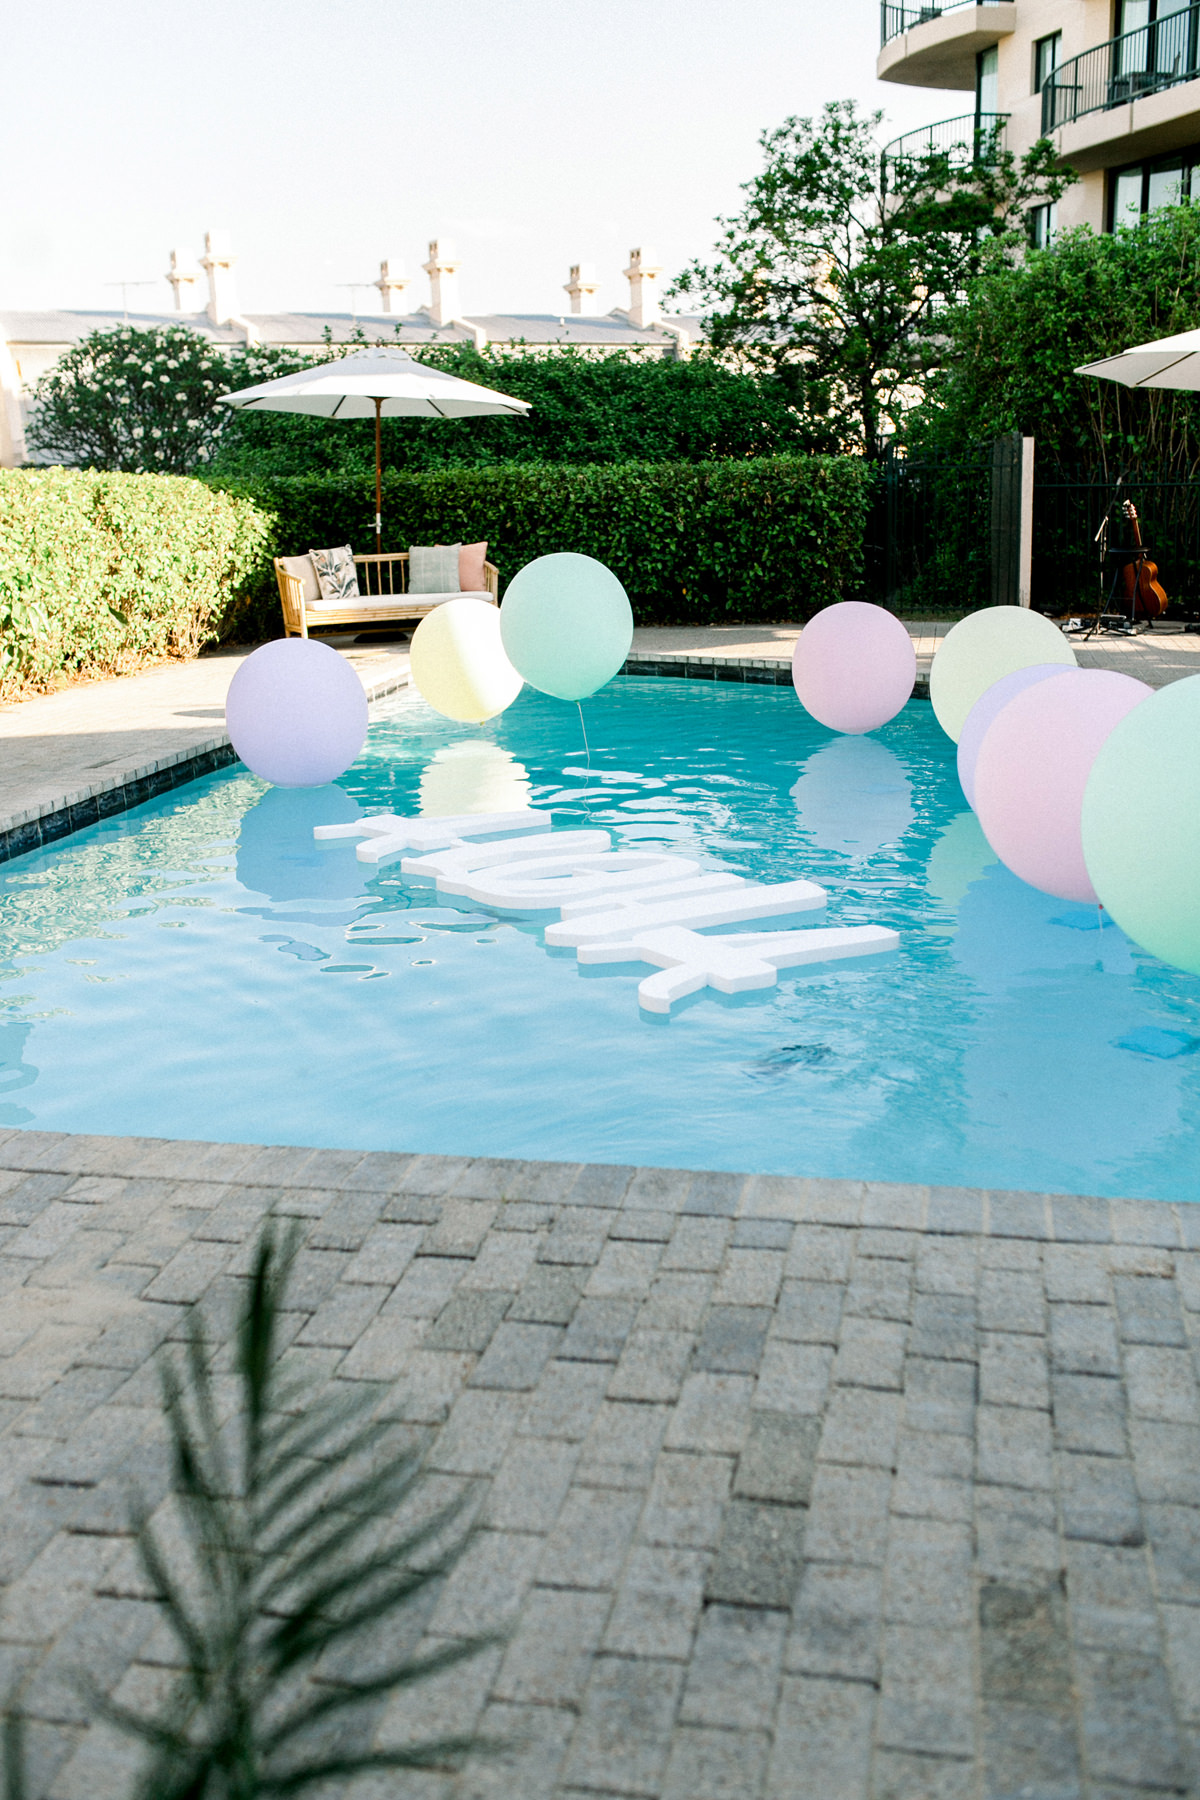 228472 Hawaiian Poolside Party Ideas Photographed By Kate Robinson